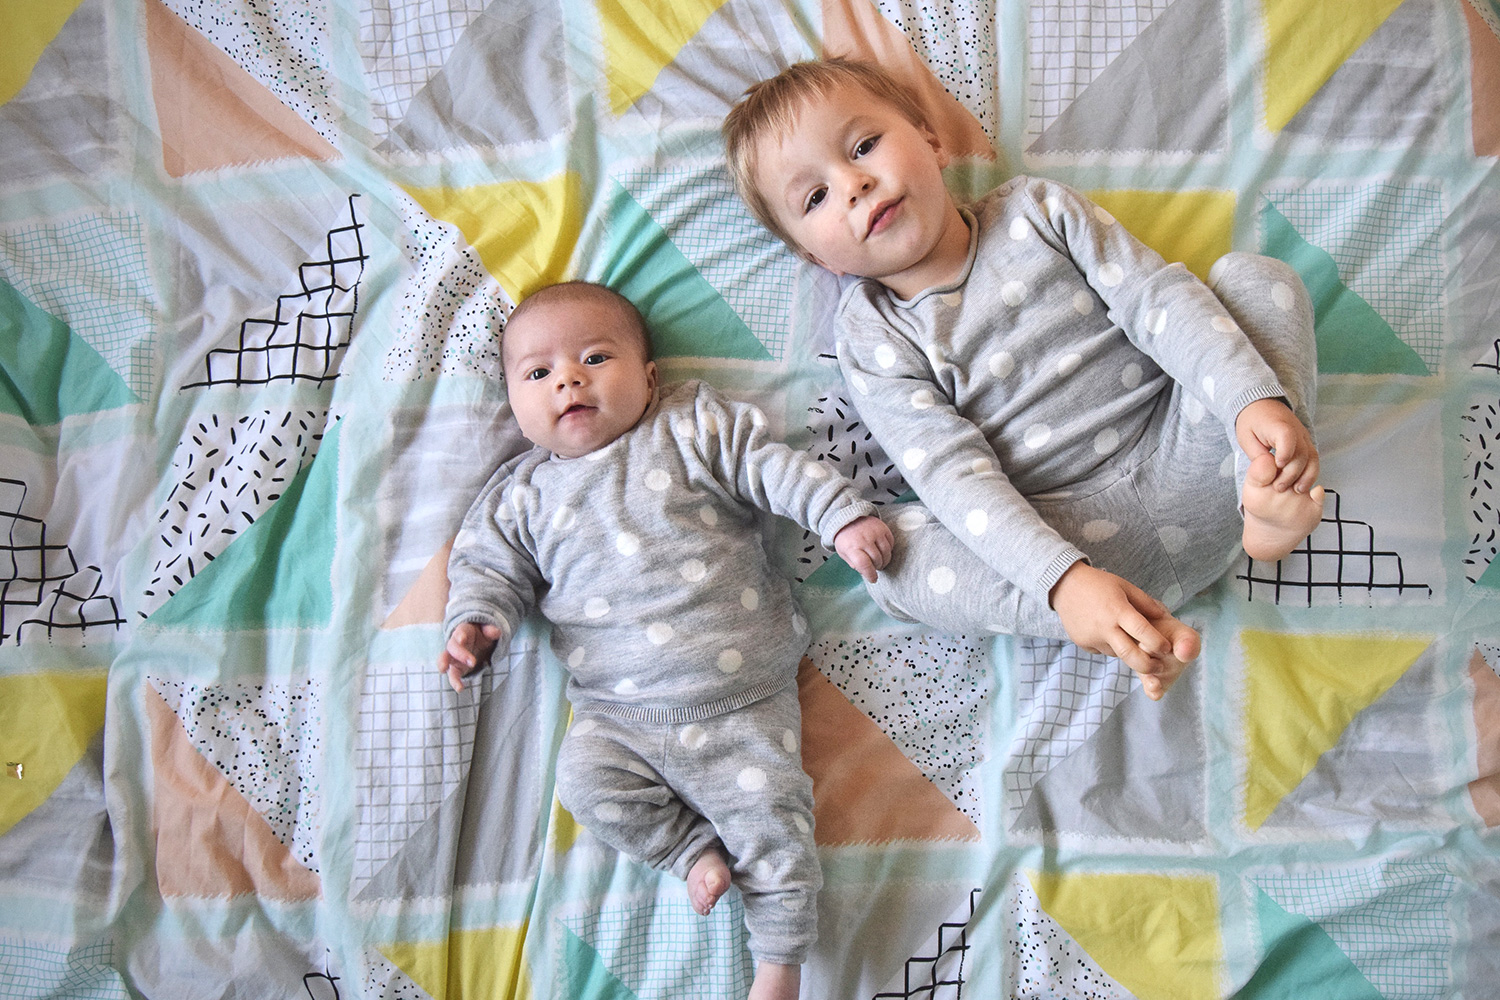 The Siblings Project {November 2016} - Newborn baby and toddler brothers wearing matching twinning H&M spotty outfits laying on Primark geometric duvet bedspread in the siblings project